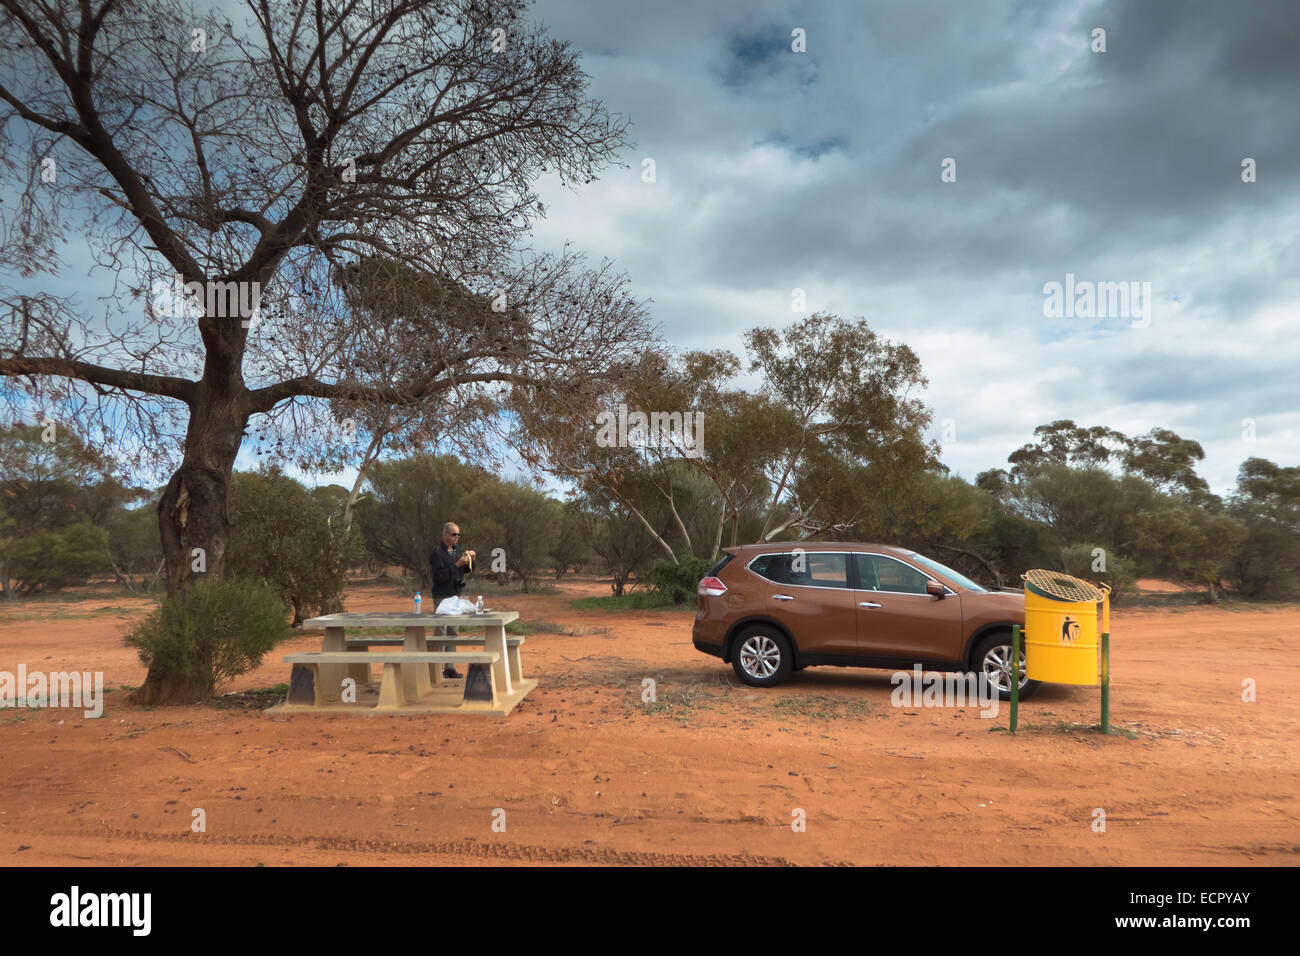 picknick area at North West Coastal Highway, photo: June 2014. - Stock Image